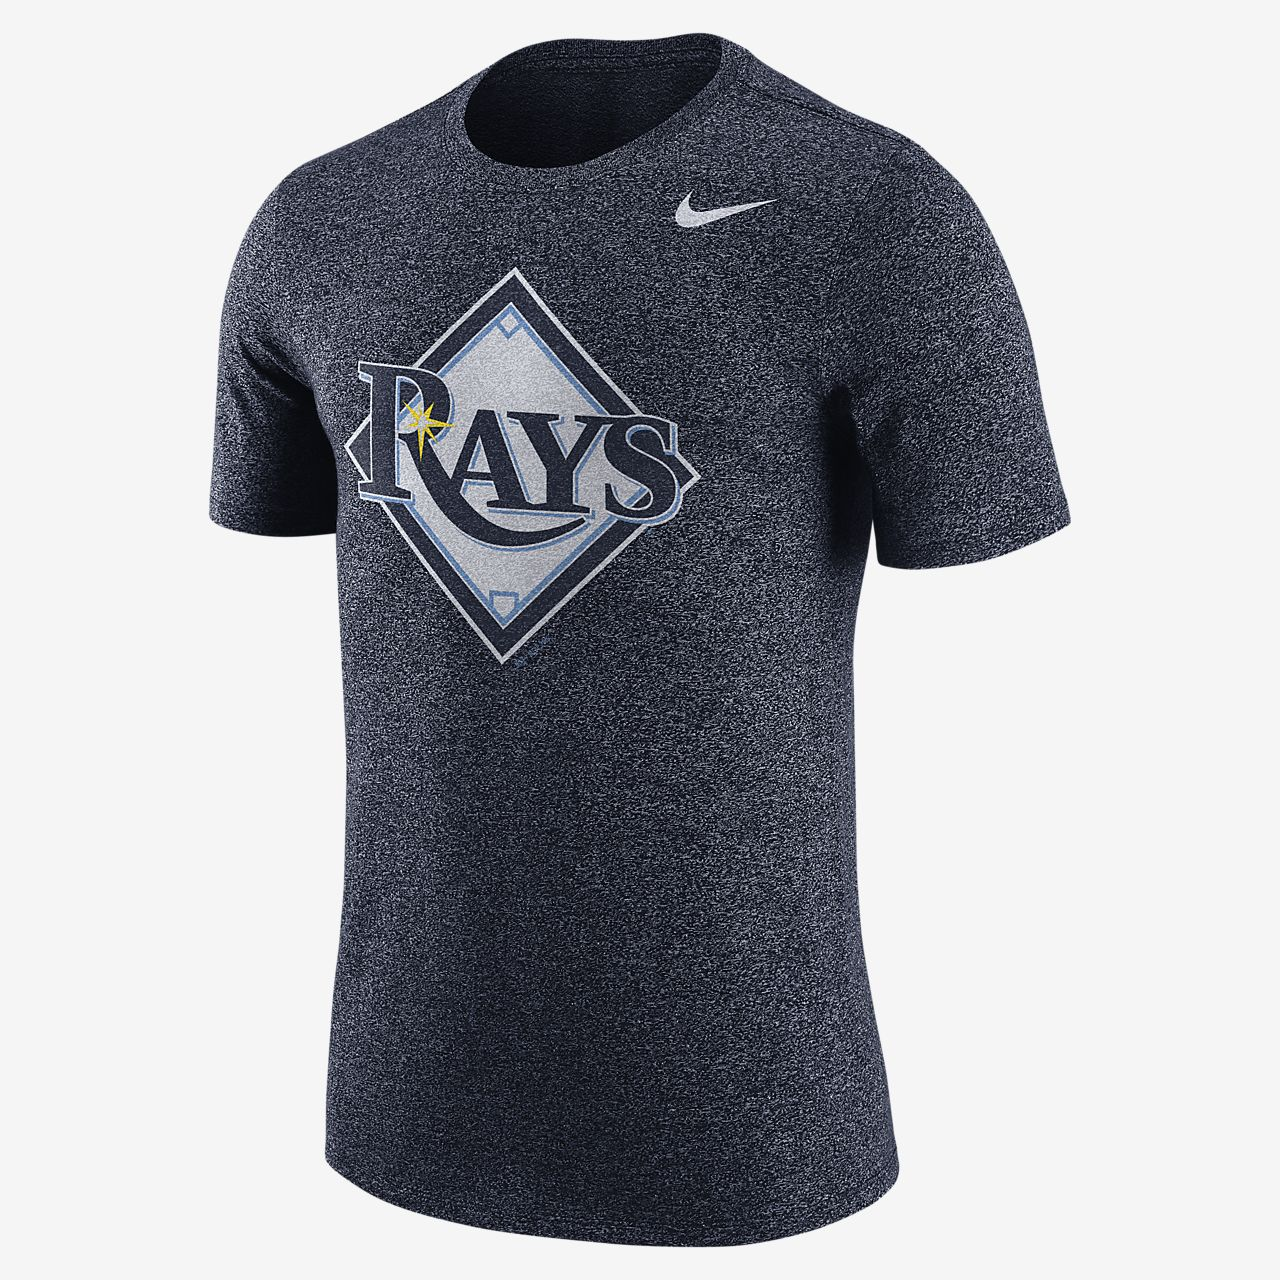 Nike Marled (MLB Rays) Men's T-Shirts Navy